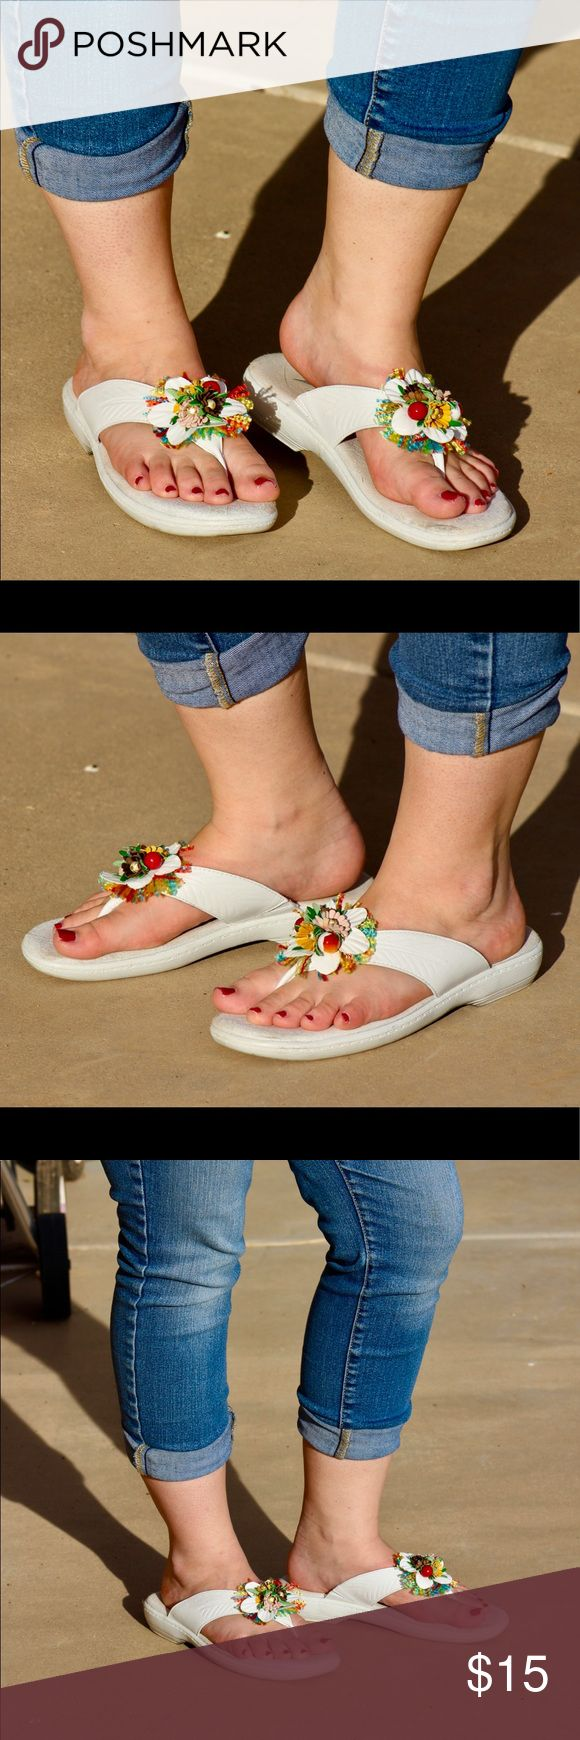 White Propét Sandles These lightly used shoes have a squishy sole with thick leather straps and a colorful decorative flower on the front. Go great with everything! Open to negotiations! Propet Shoes Sandals